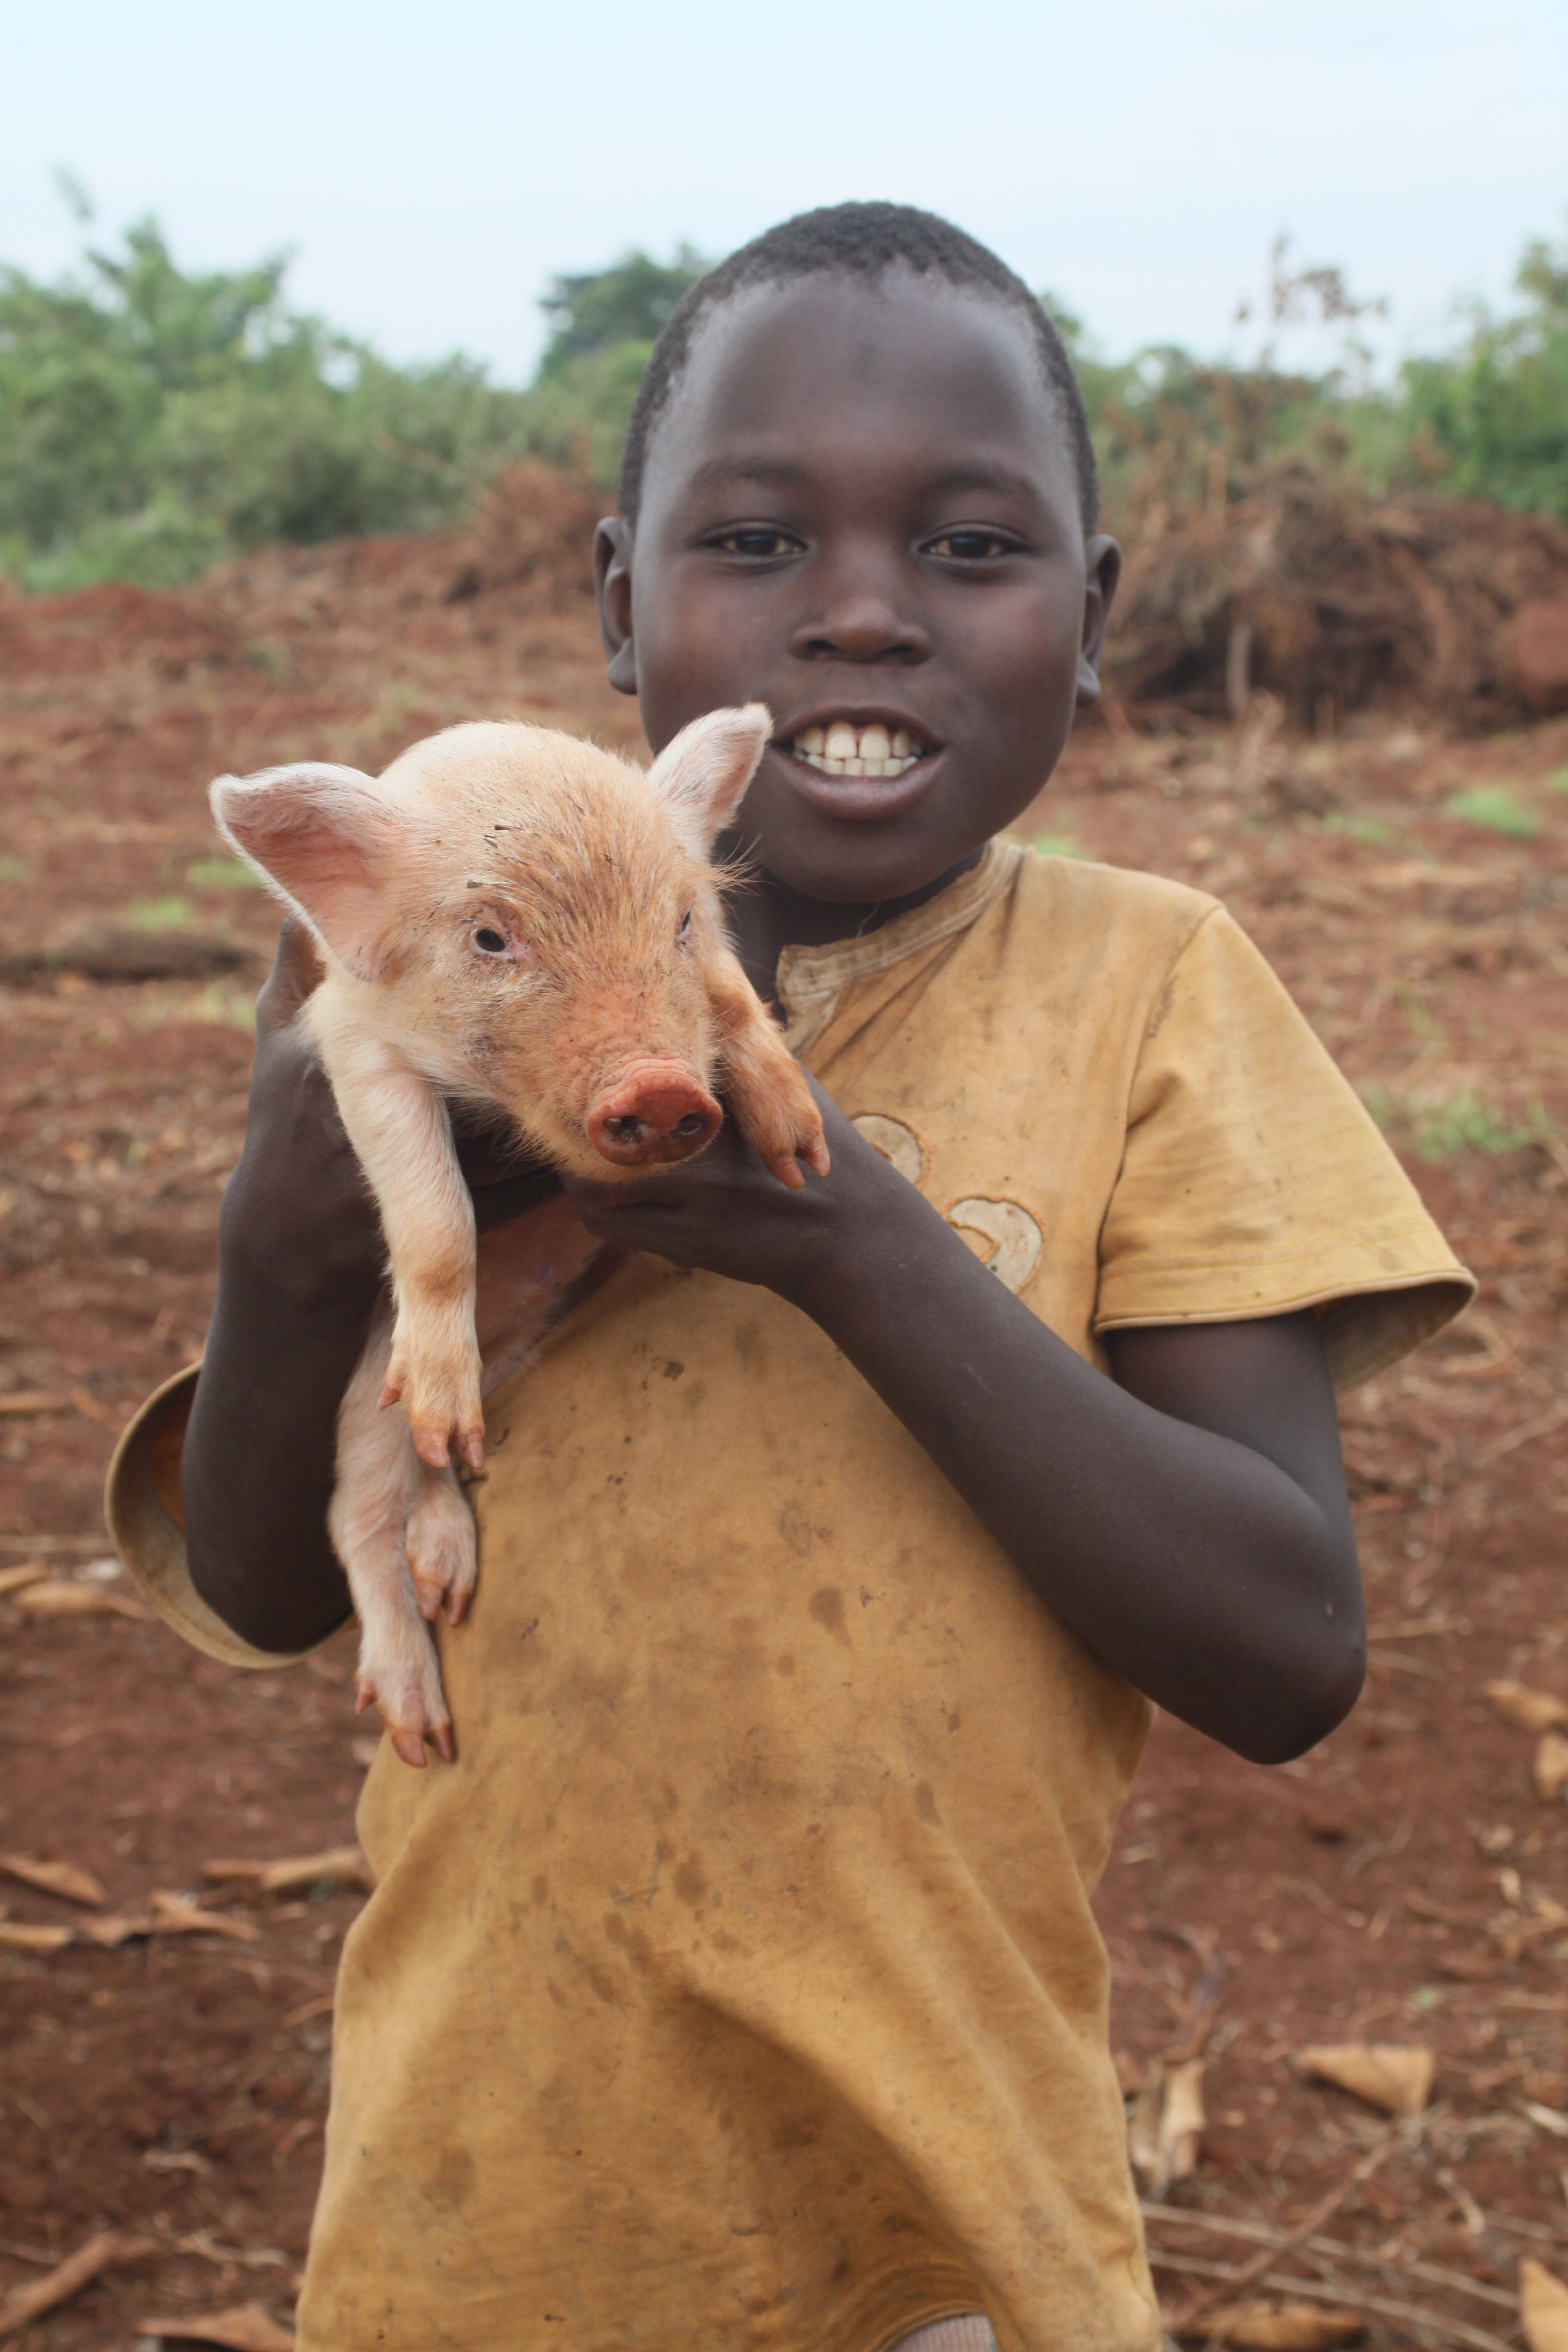 Help us kick start piggery businesses to help provide self-sustainable support for families in Zirobwe, Uganda.